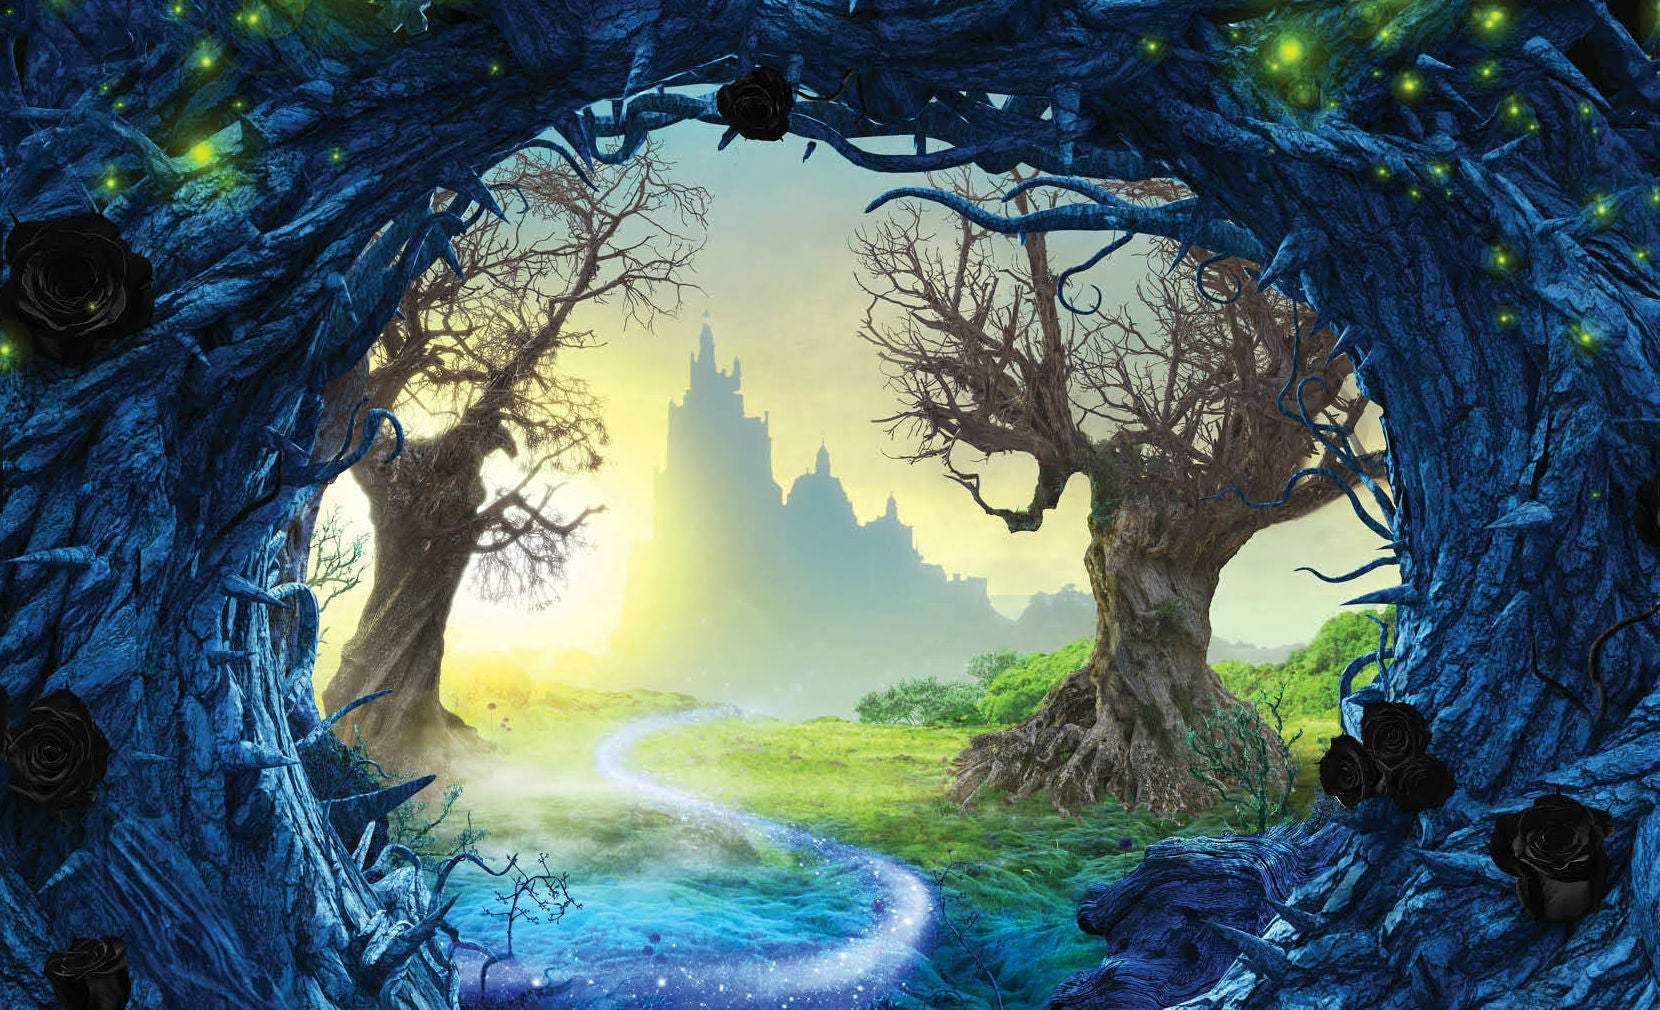 Follow Author Holly Black On Her Maleficent Journey In This Exclusive Video